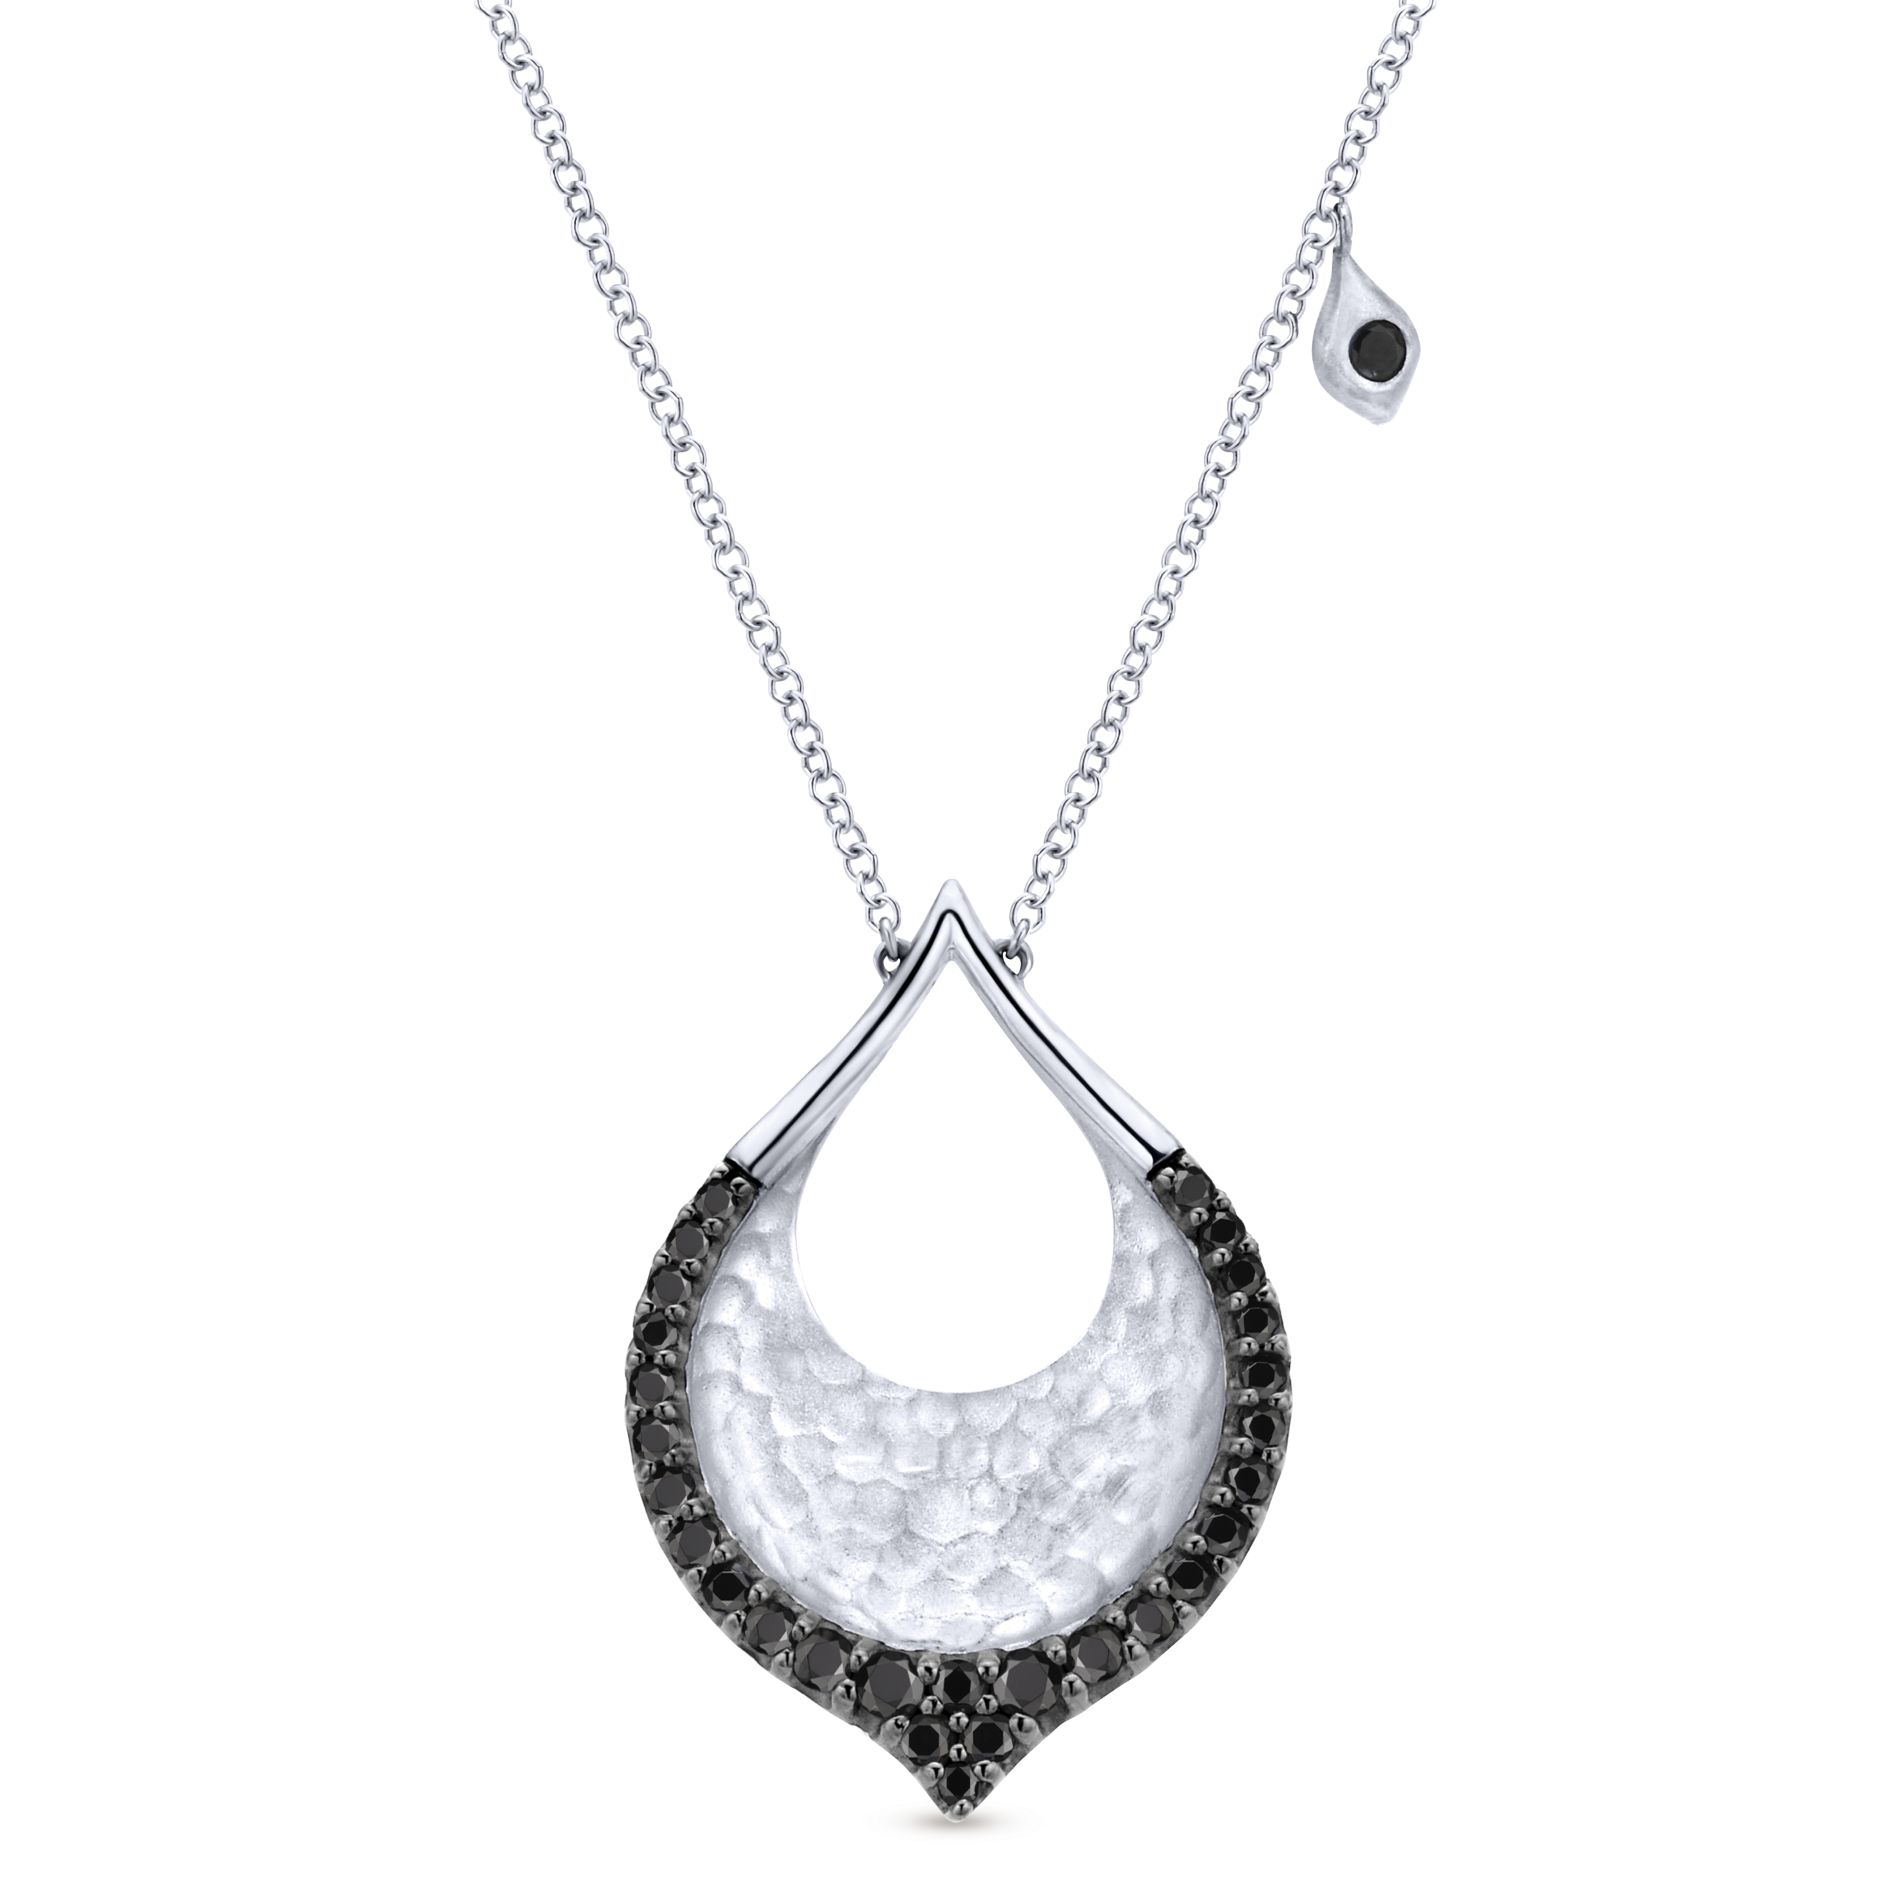 Necklaces - SILVER FASHION BLACK SPINEL NECKLACE